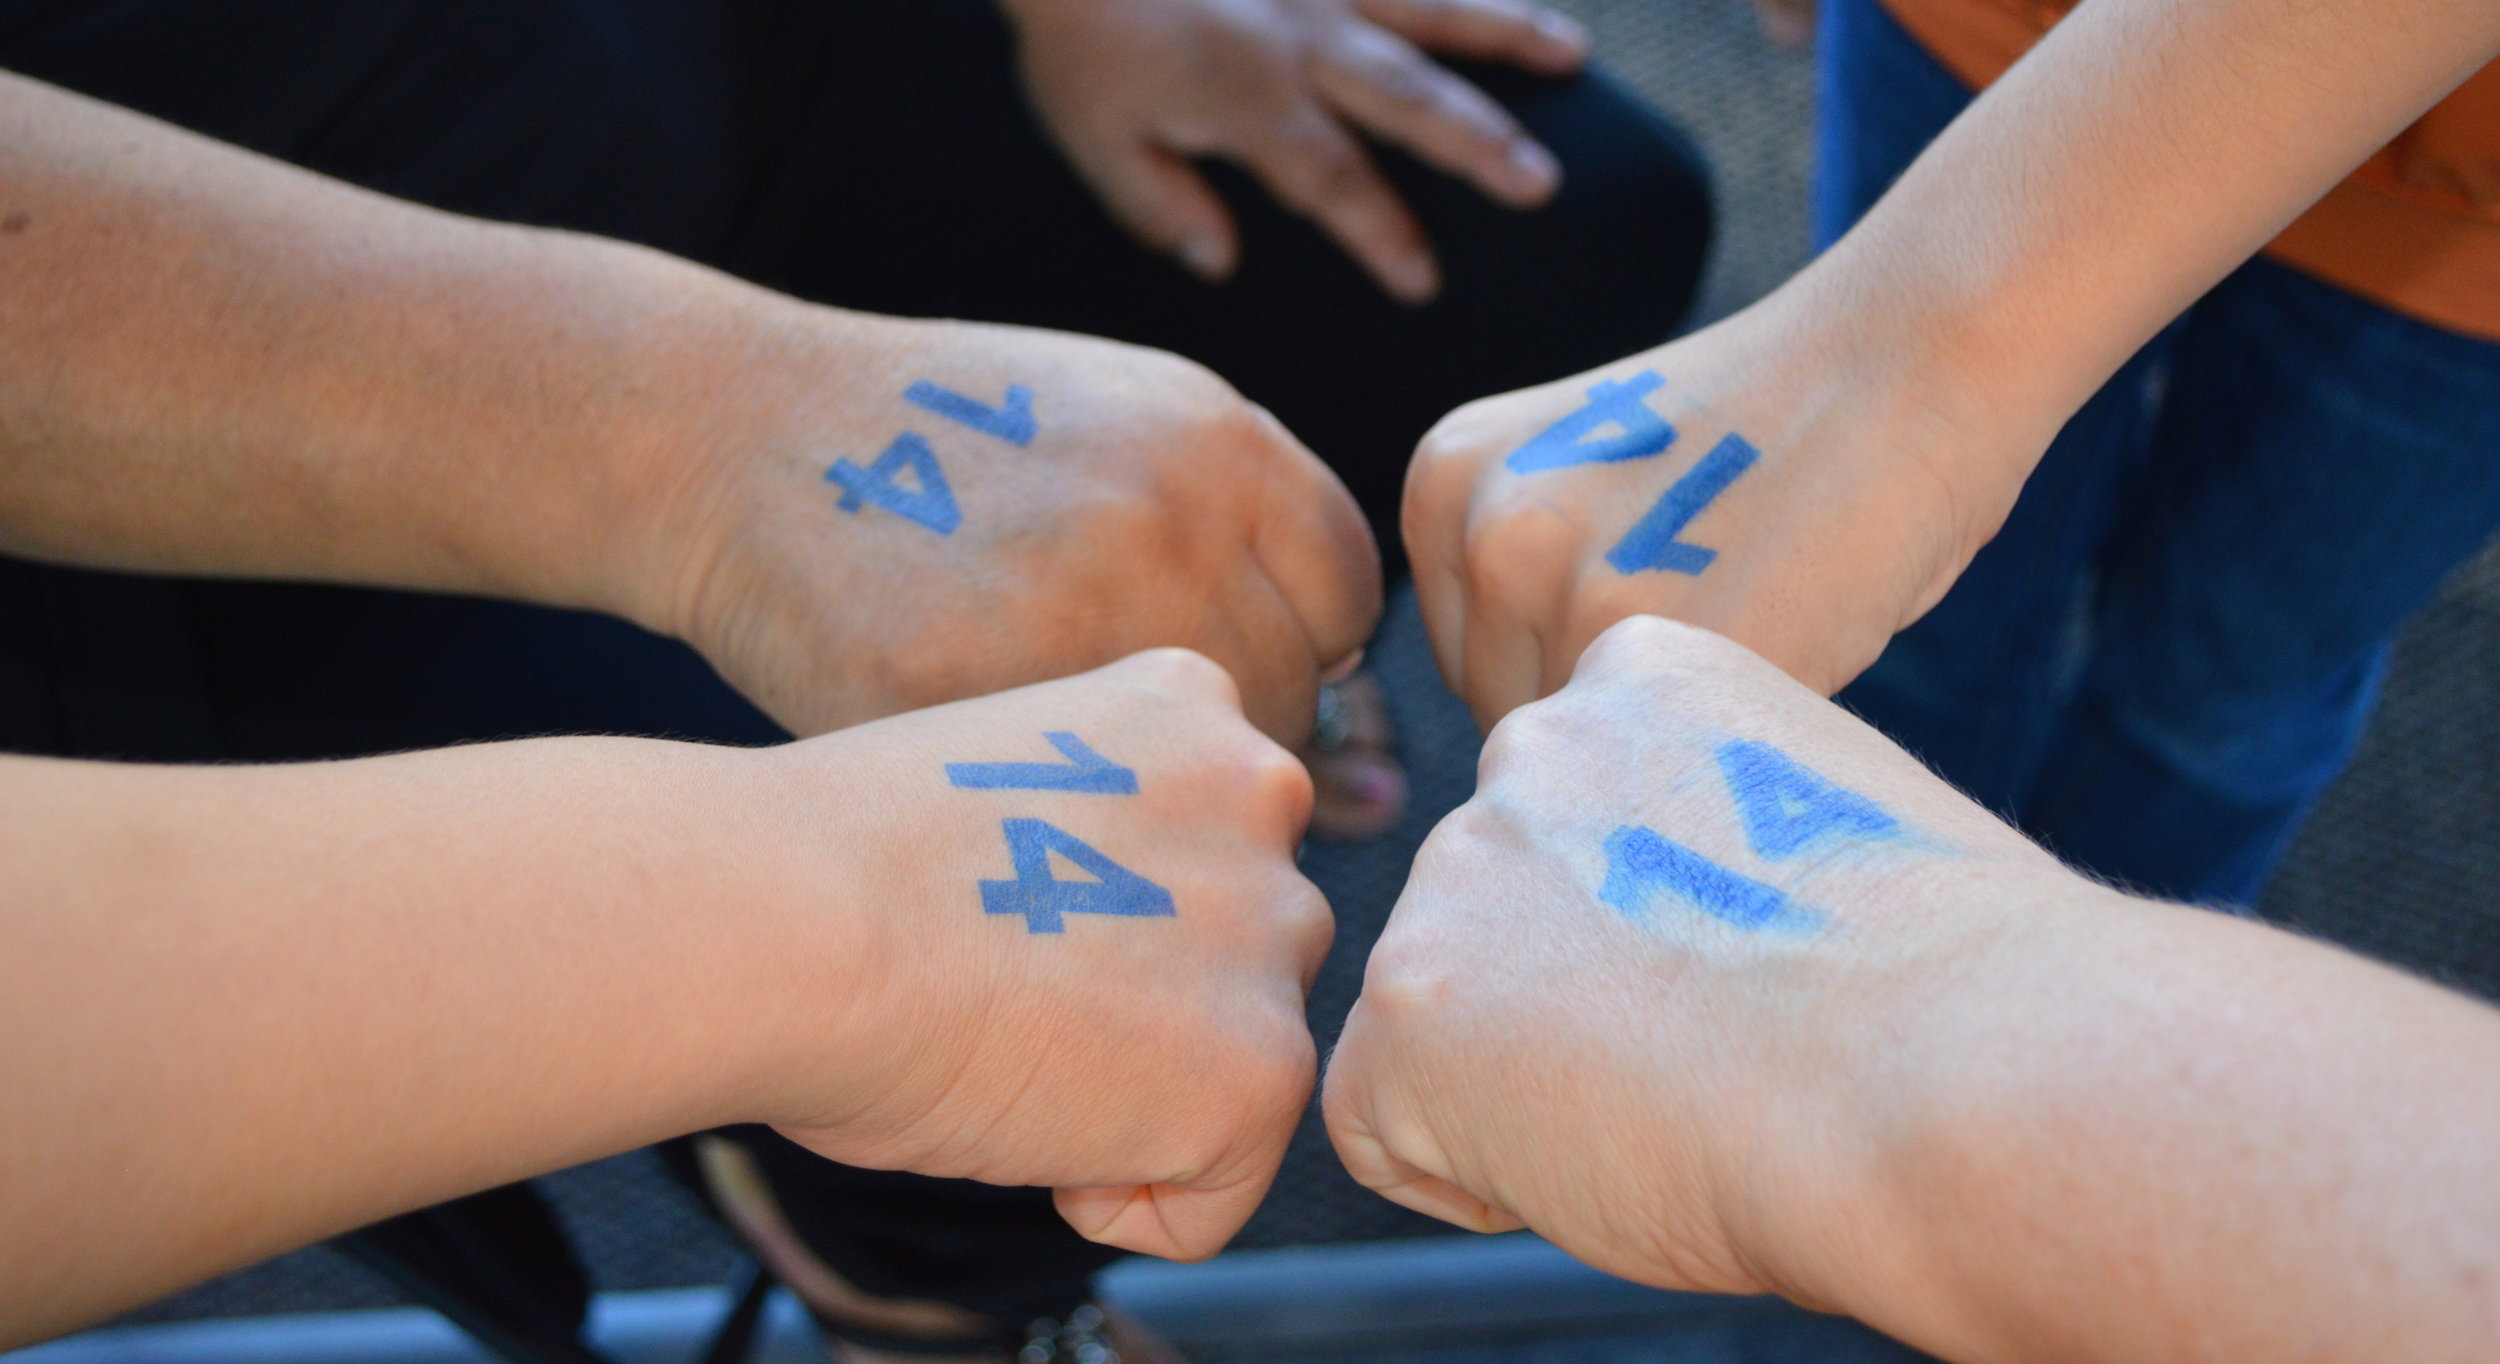 SEA_14 stamp on hands.JPG